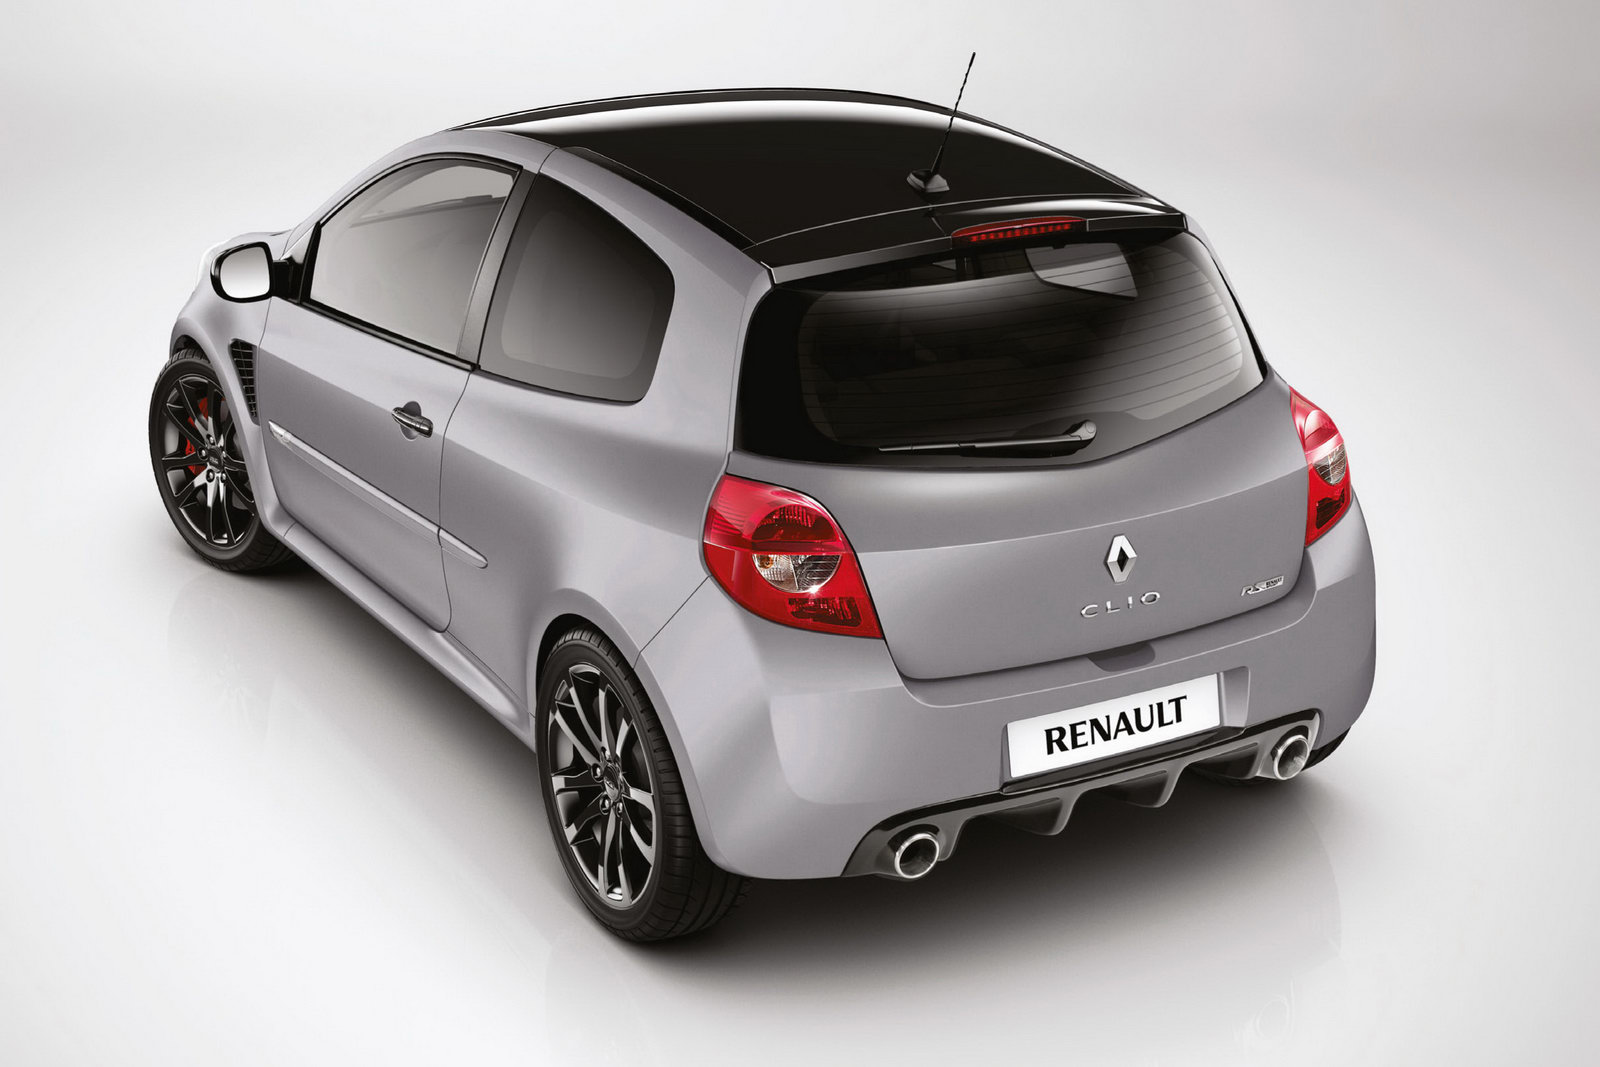 Very much a pleasure, the Renault Clio Sport cars are exciting to drive.